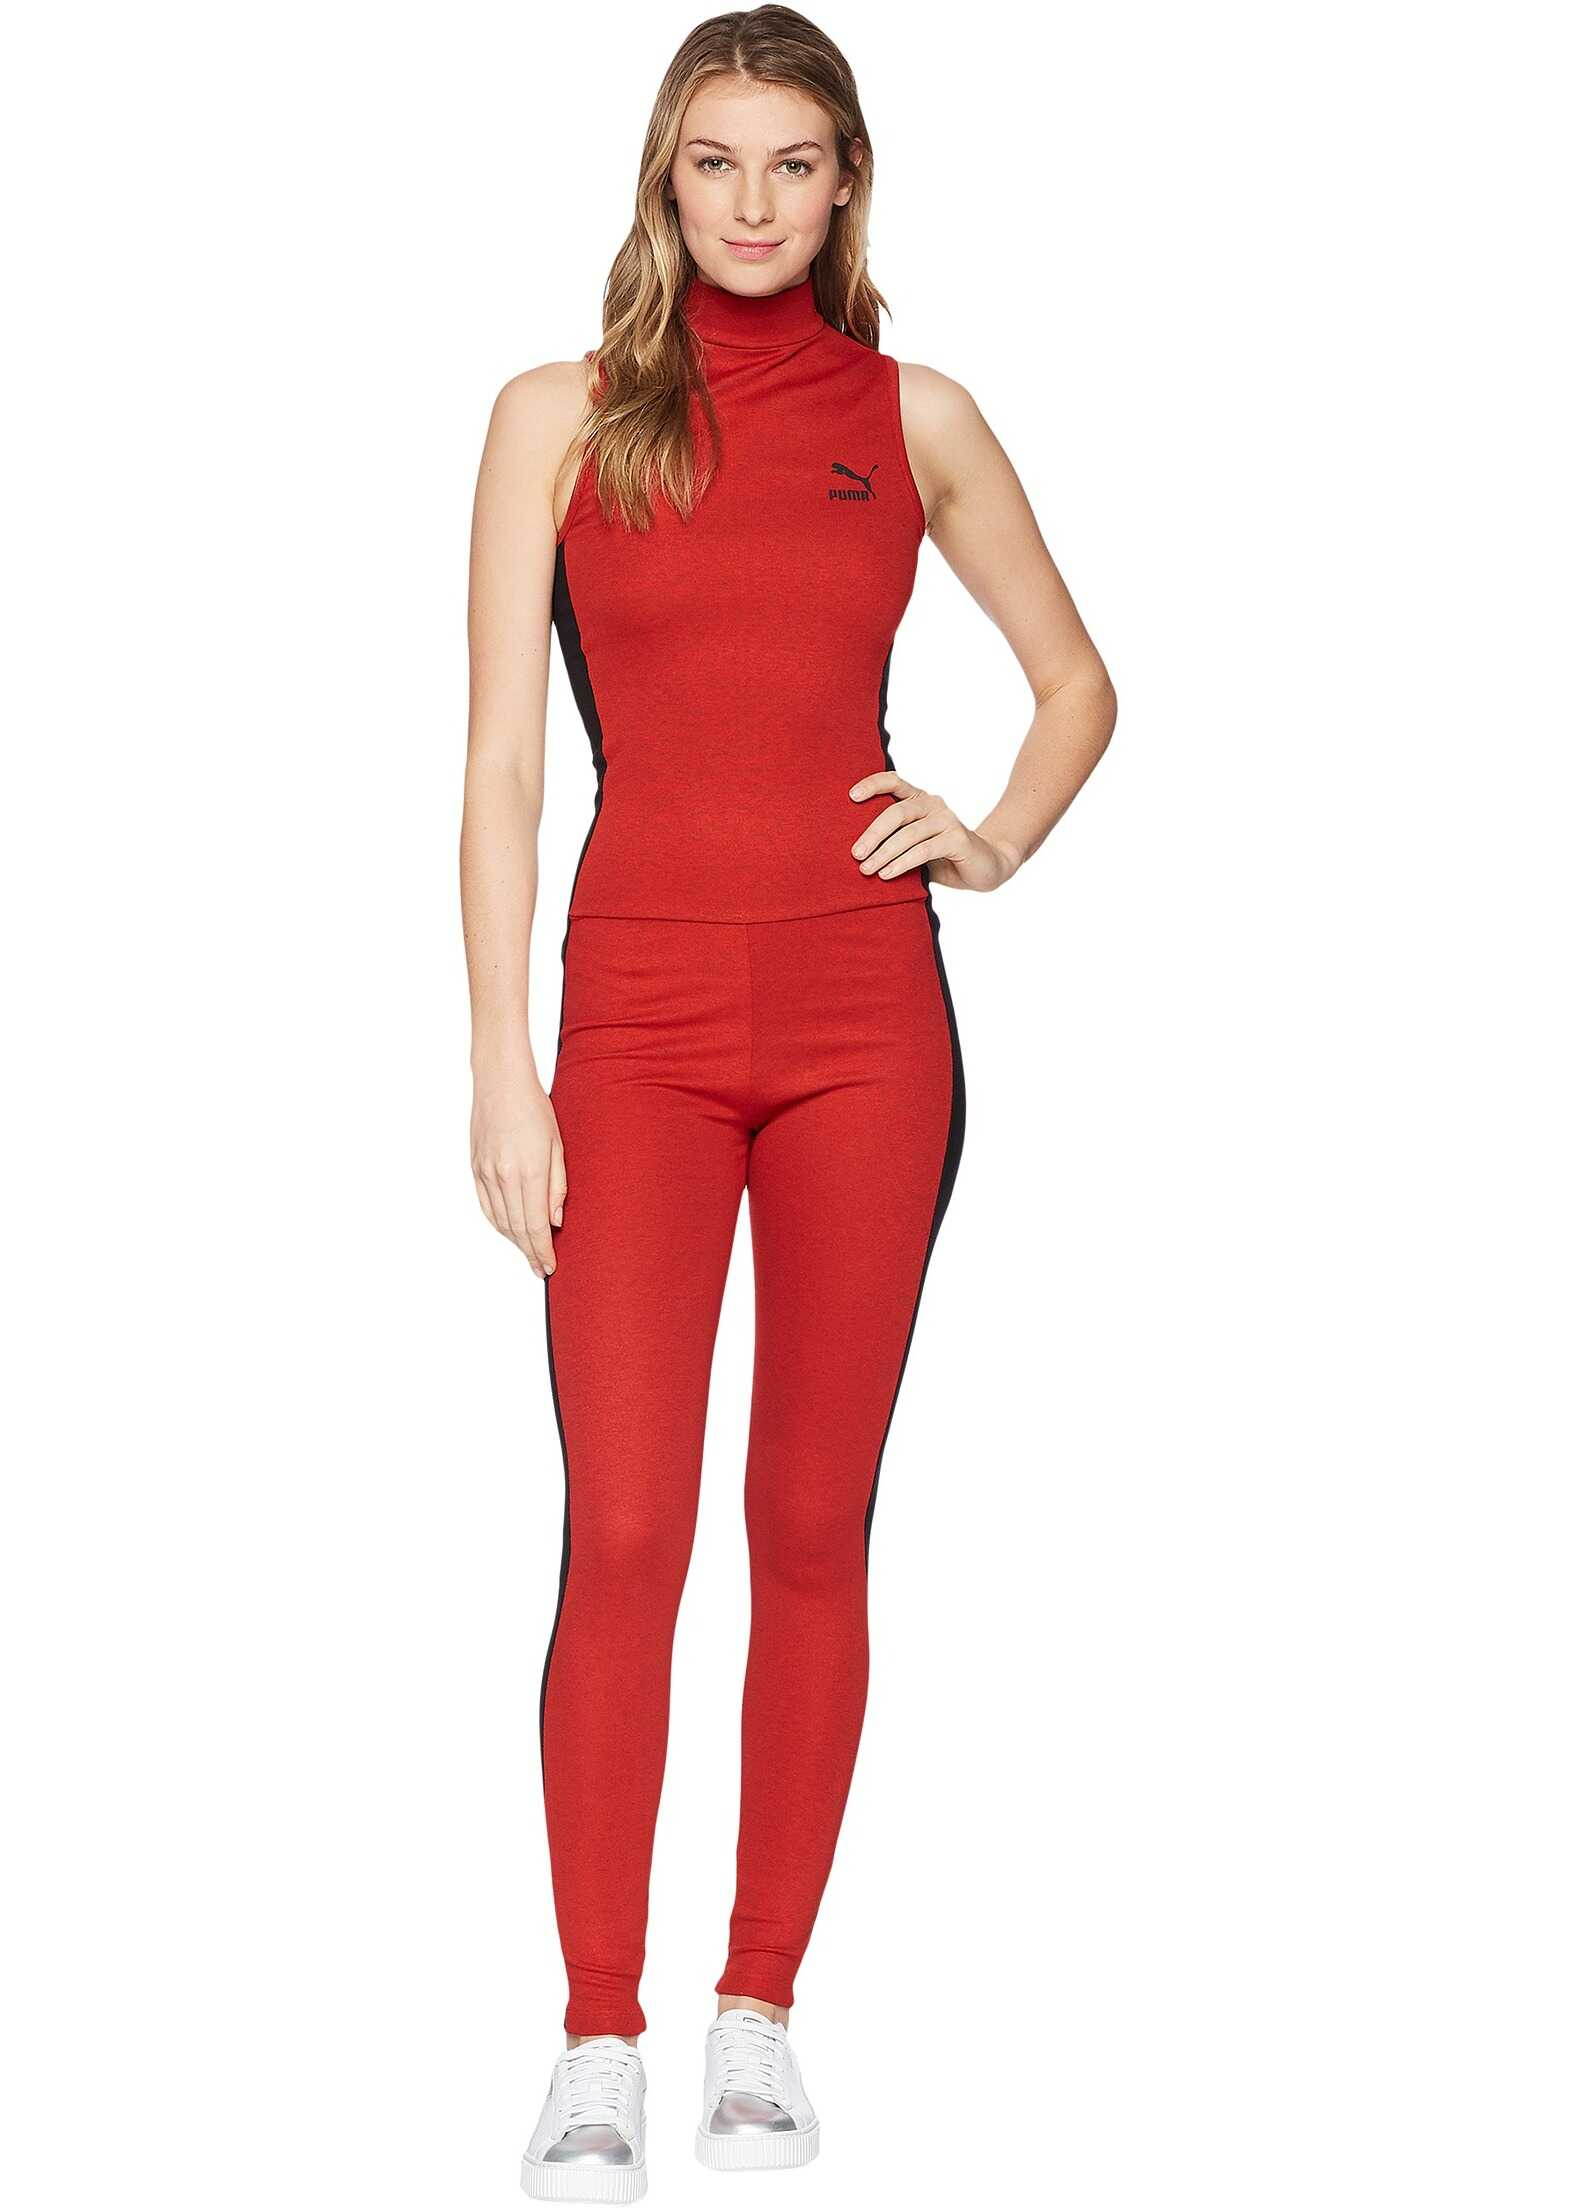 PUMA T7 Jumpsuit High Risk Red/Black